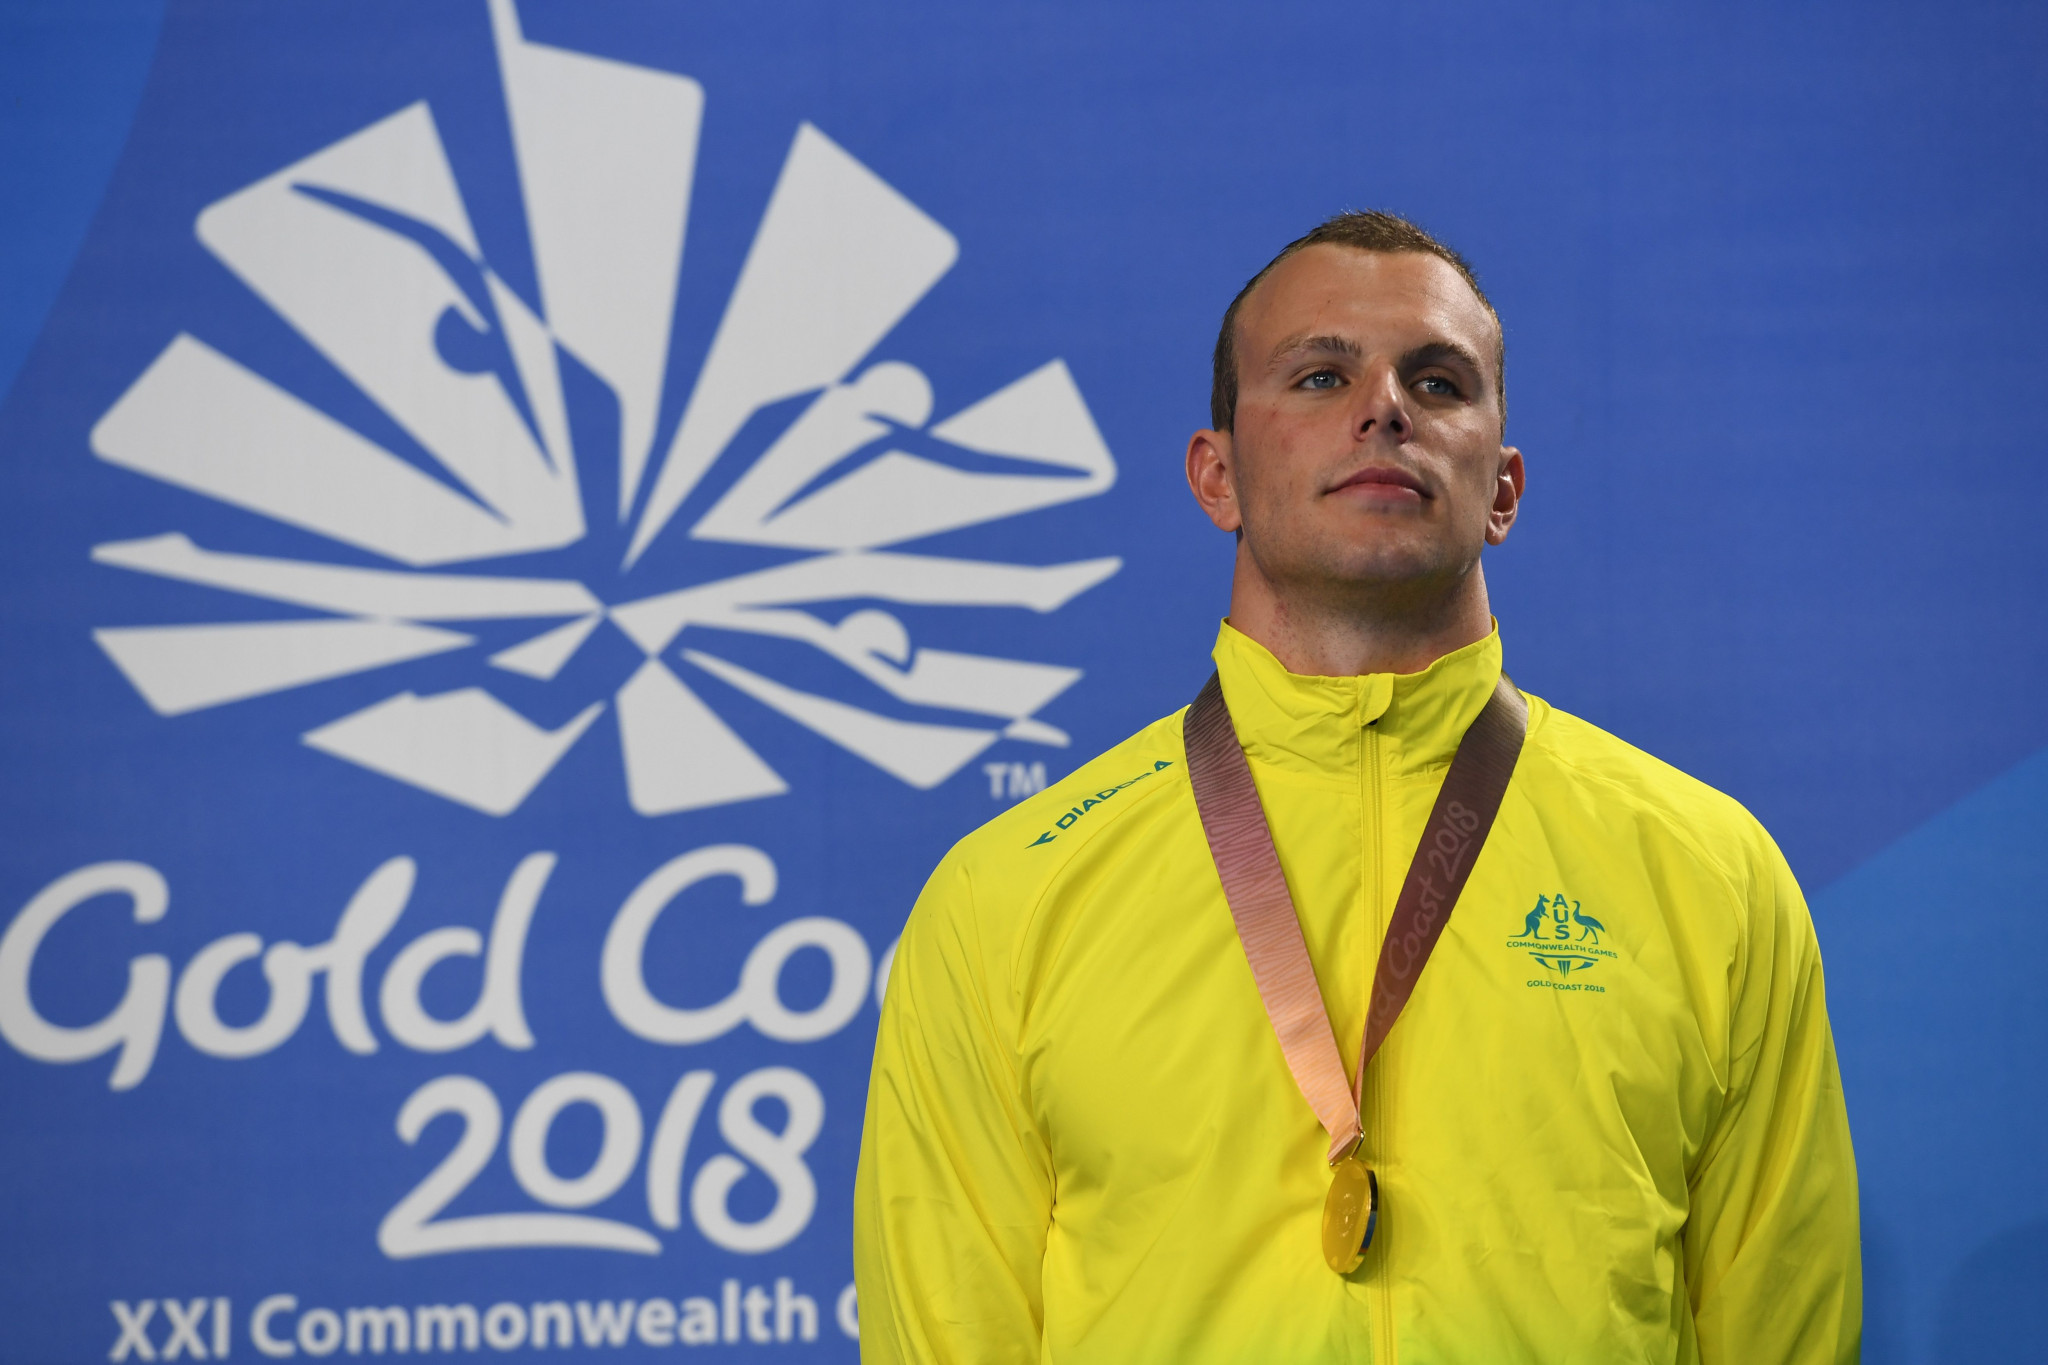 Chalmers marks triumphant return from heart surgery with Gold Coast 2018 swimming double